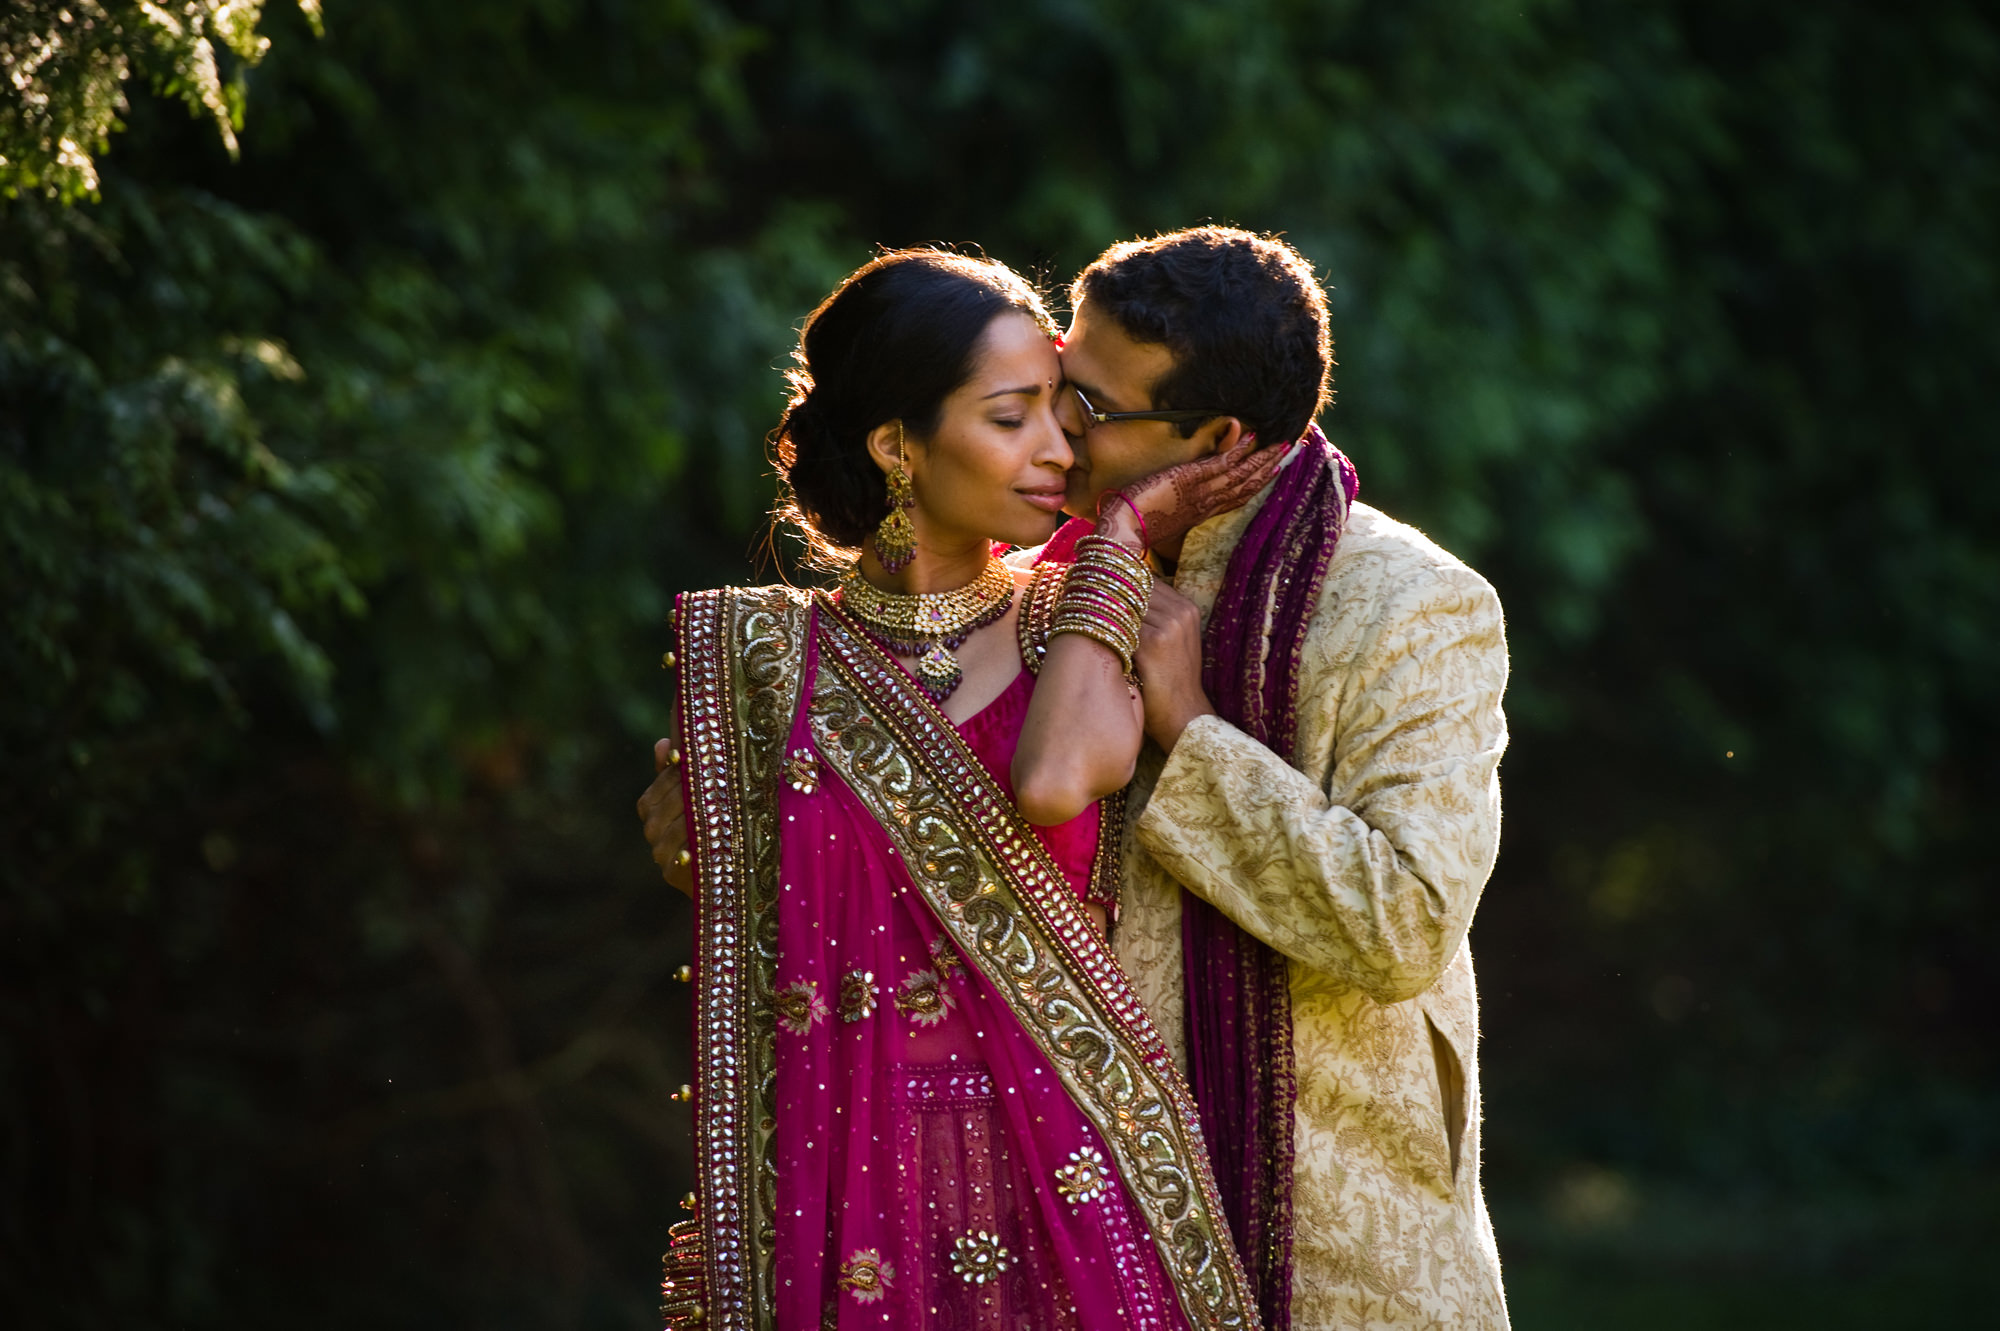 Indian bride and groom embrace in garden, by Cliff Mautner